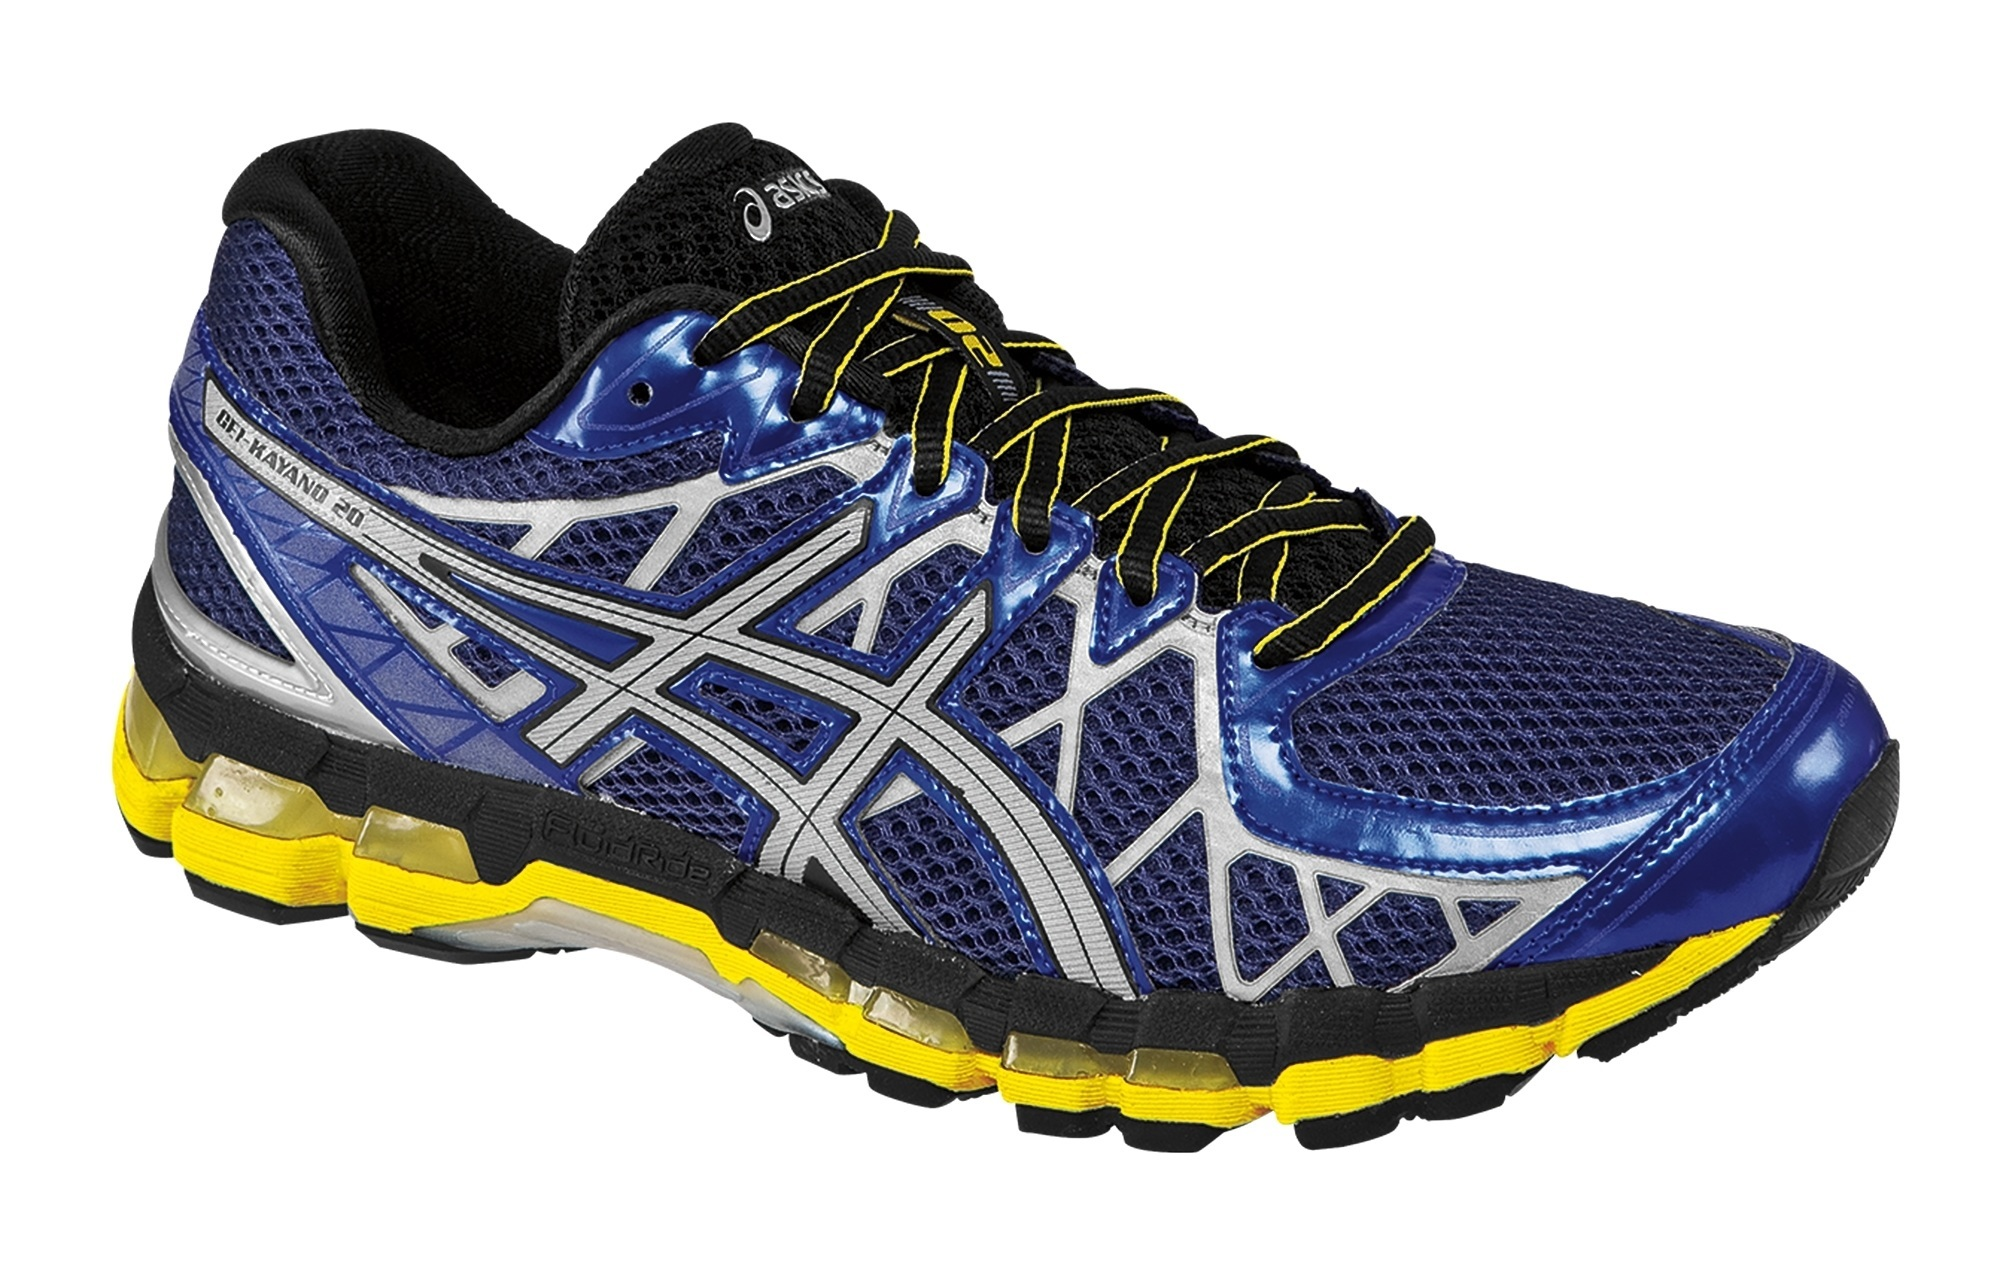 Asics Gel Kayano 20 gradient